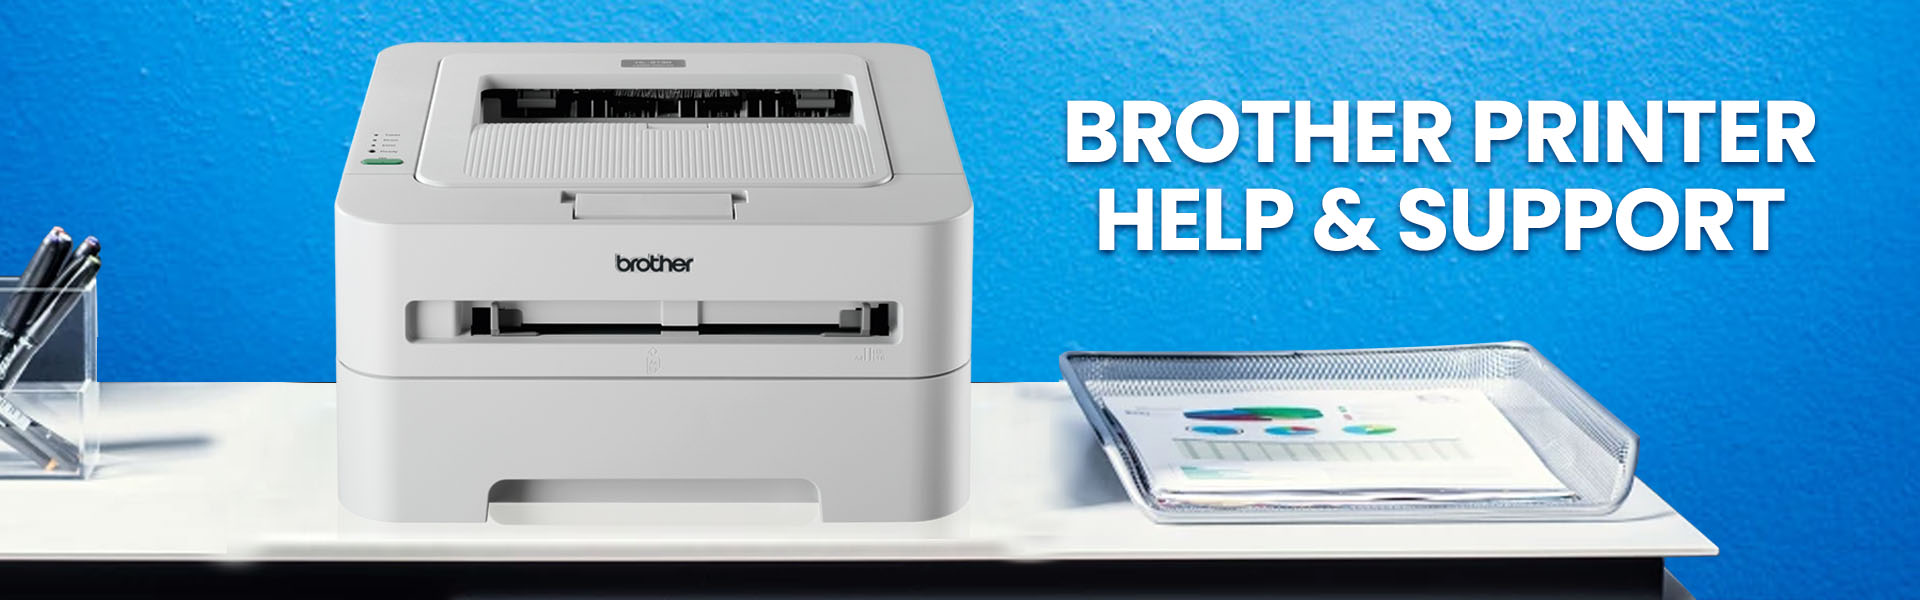 brother printer Help & Support